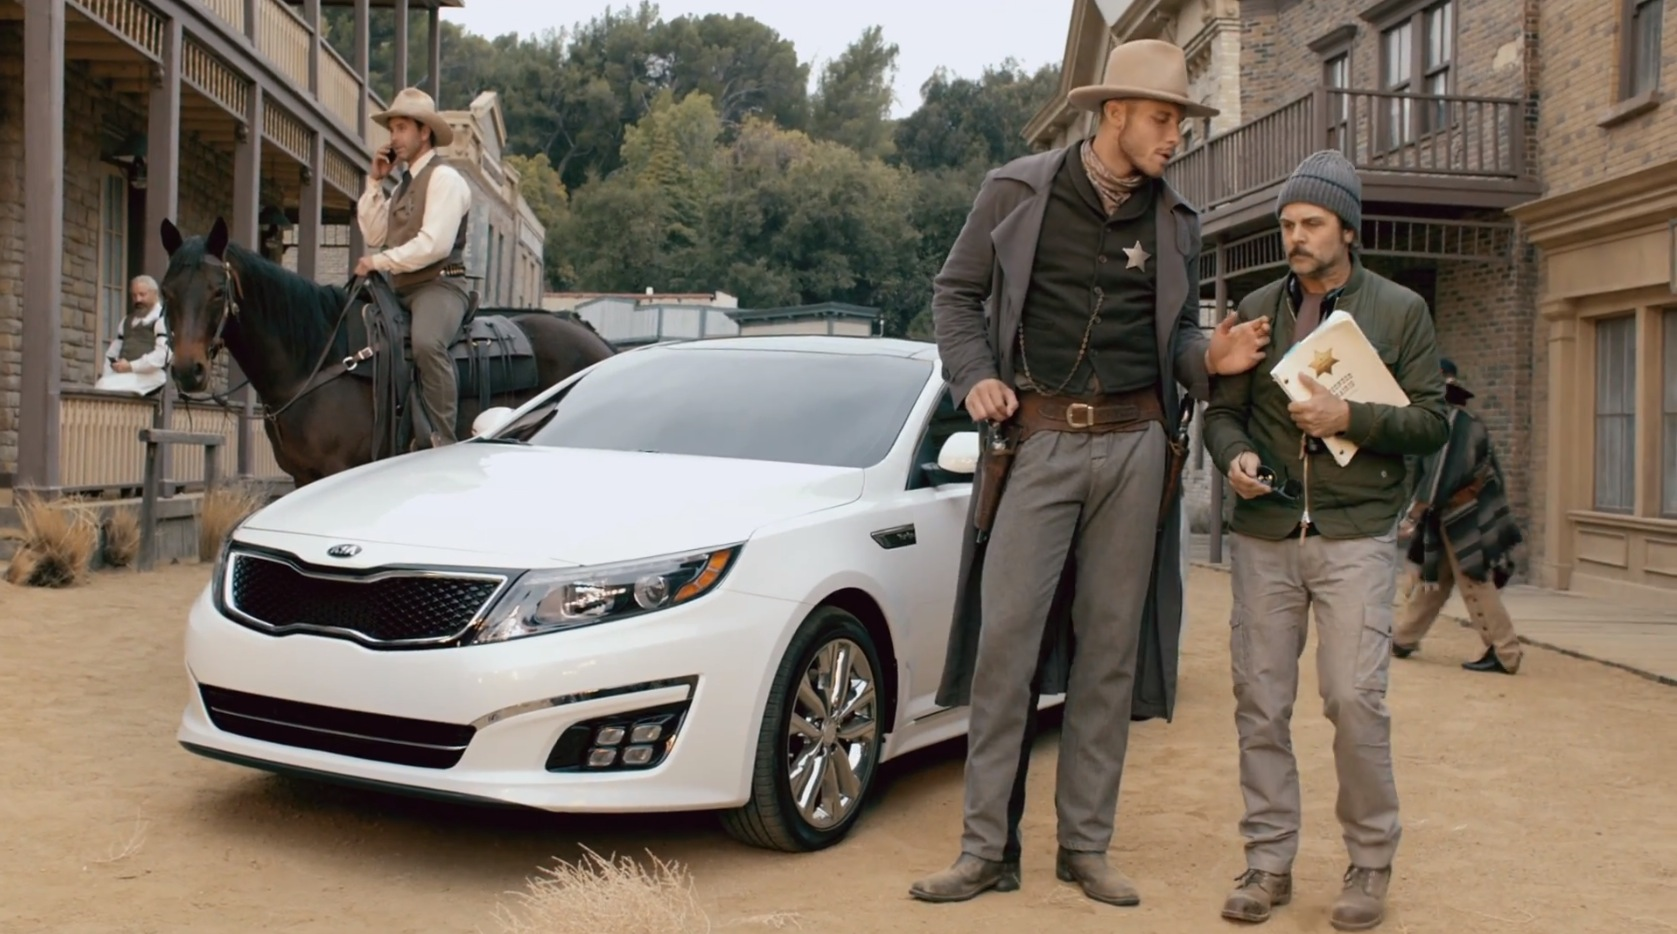 L A Clippers Star Blake Griffin Drives Kia Optima In Wild